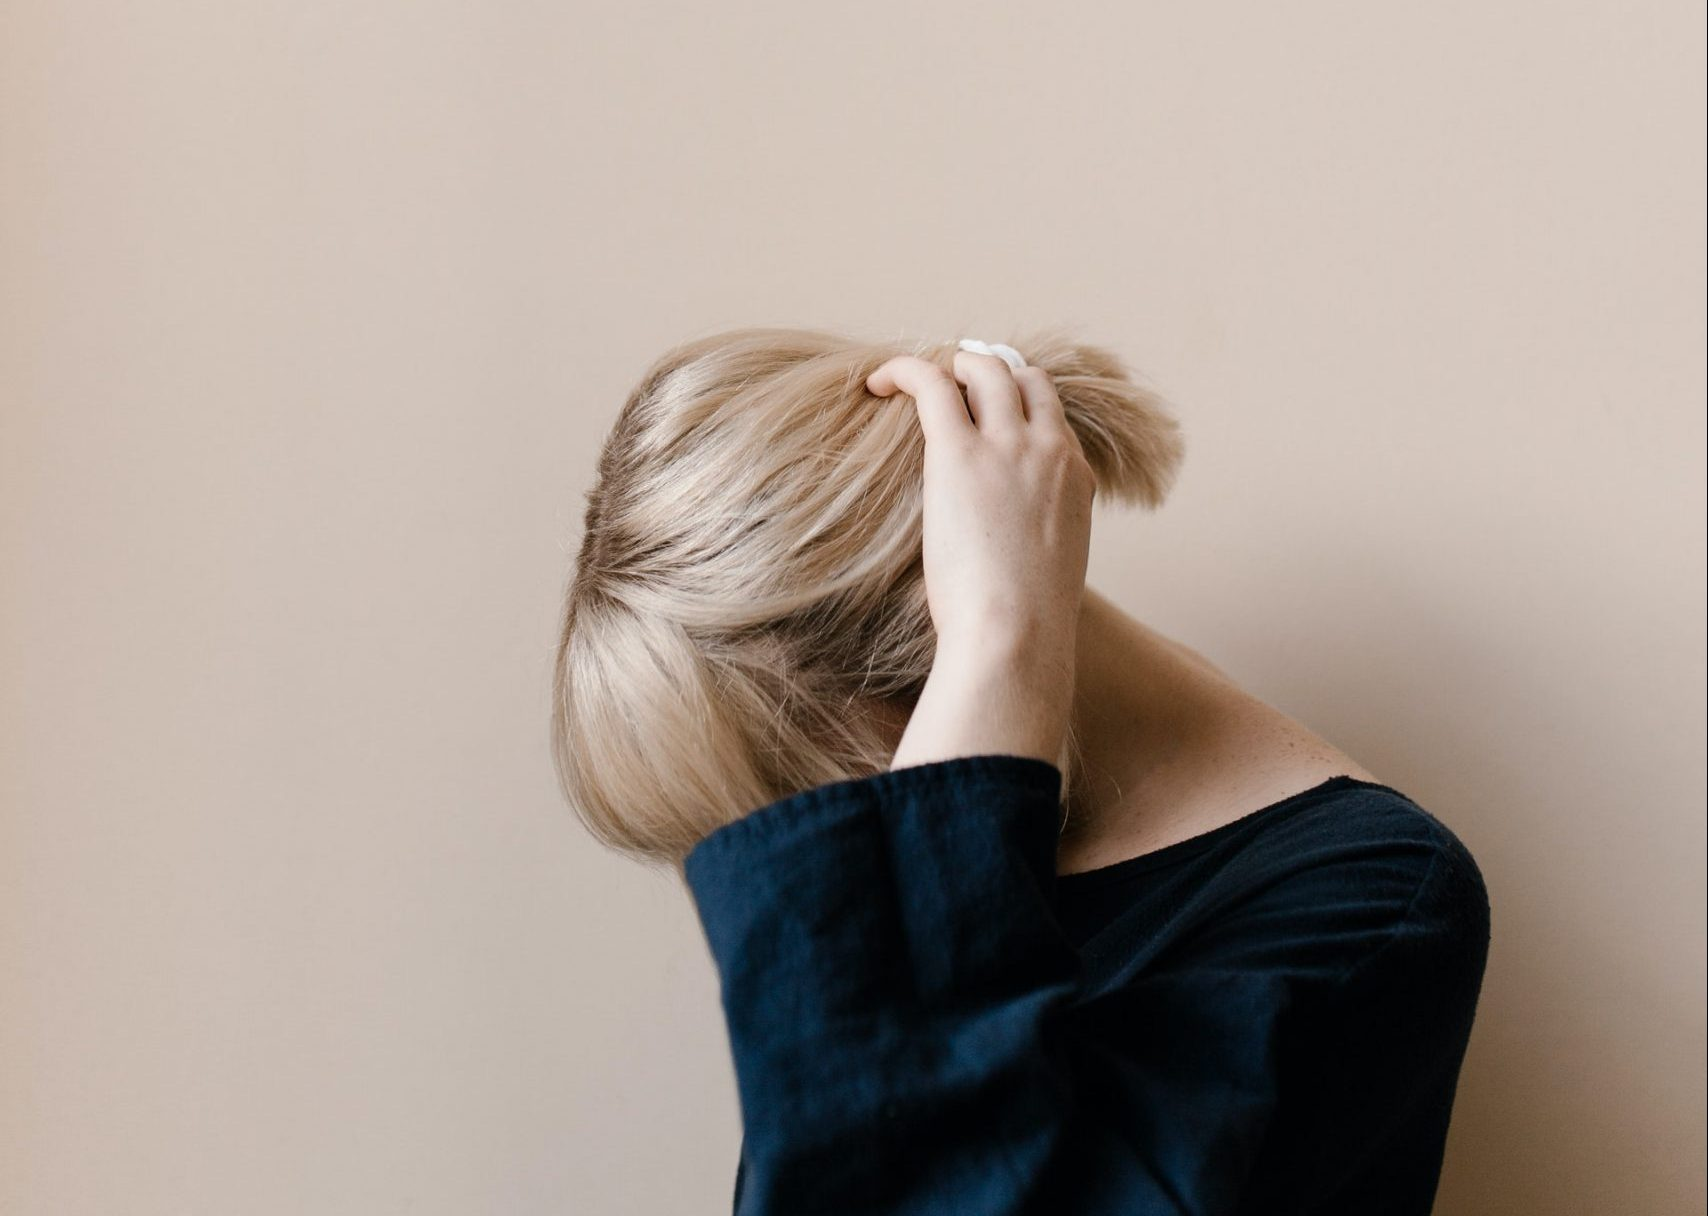 Photo of blond female teen with her head down and her left hand reaching for her ponytail thereby obscuring her face. This photo represents a teen with social anxiety who could use some online therapy in Illinois for social anxiety disorder.